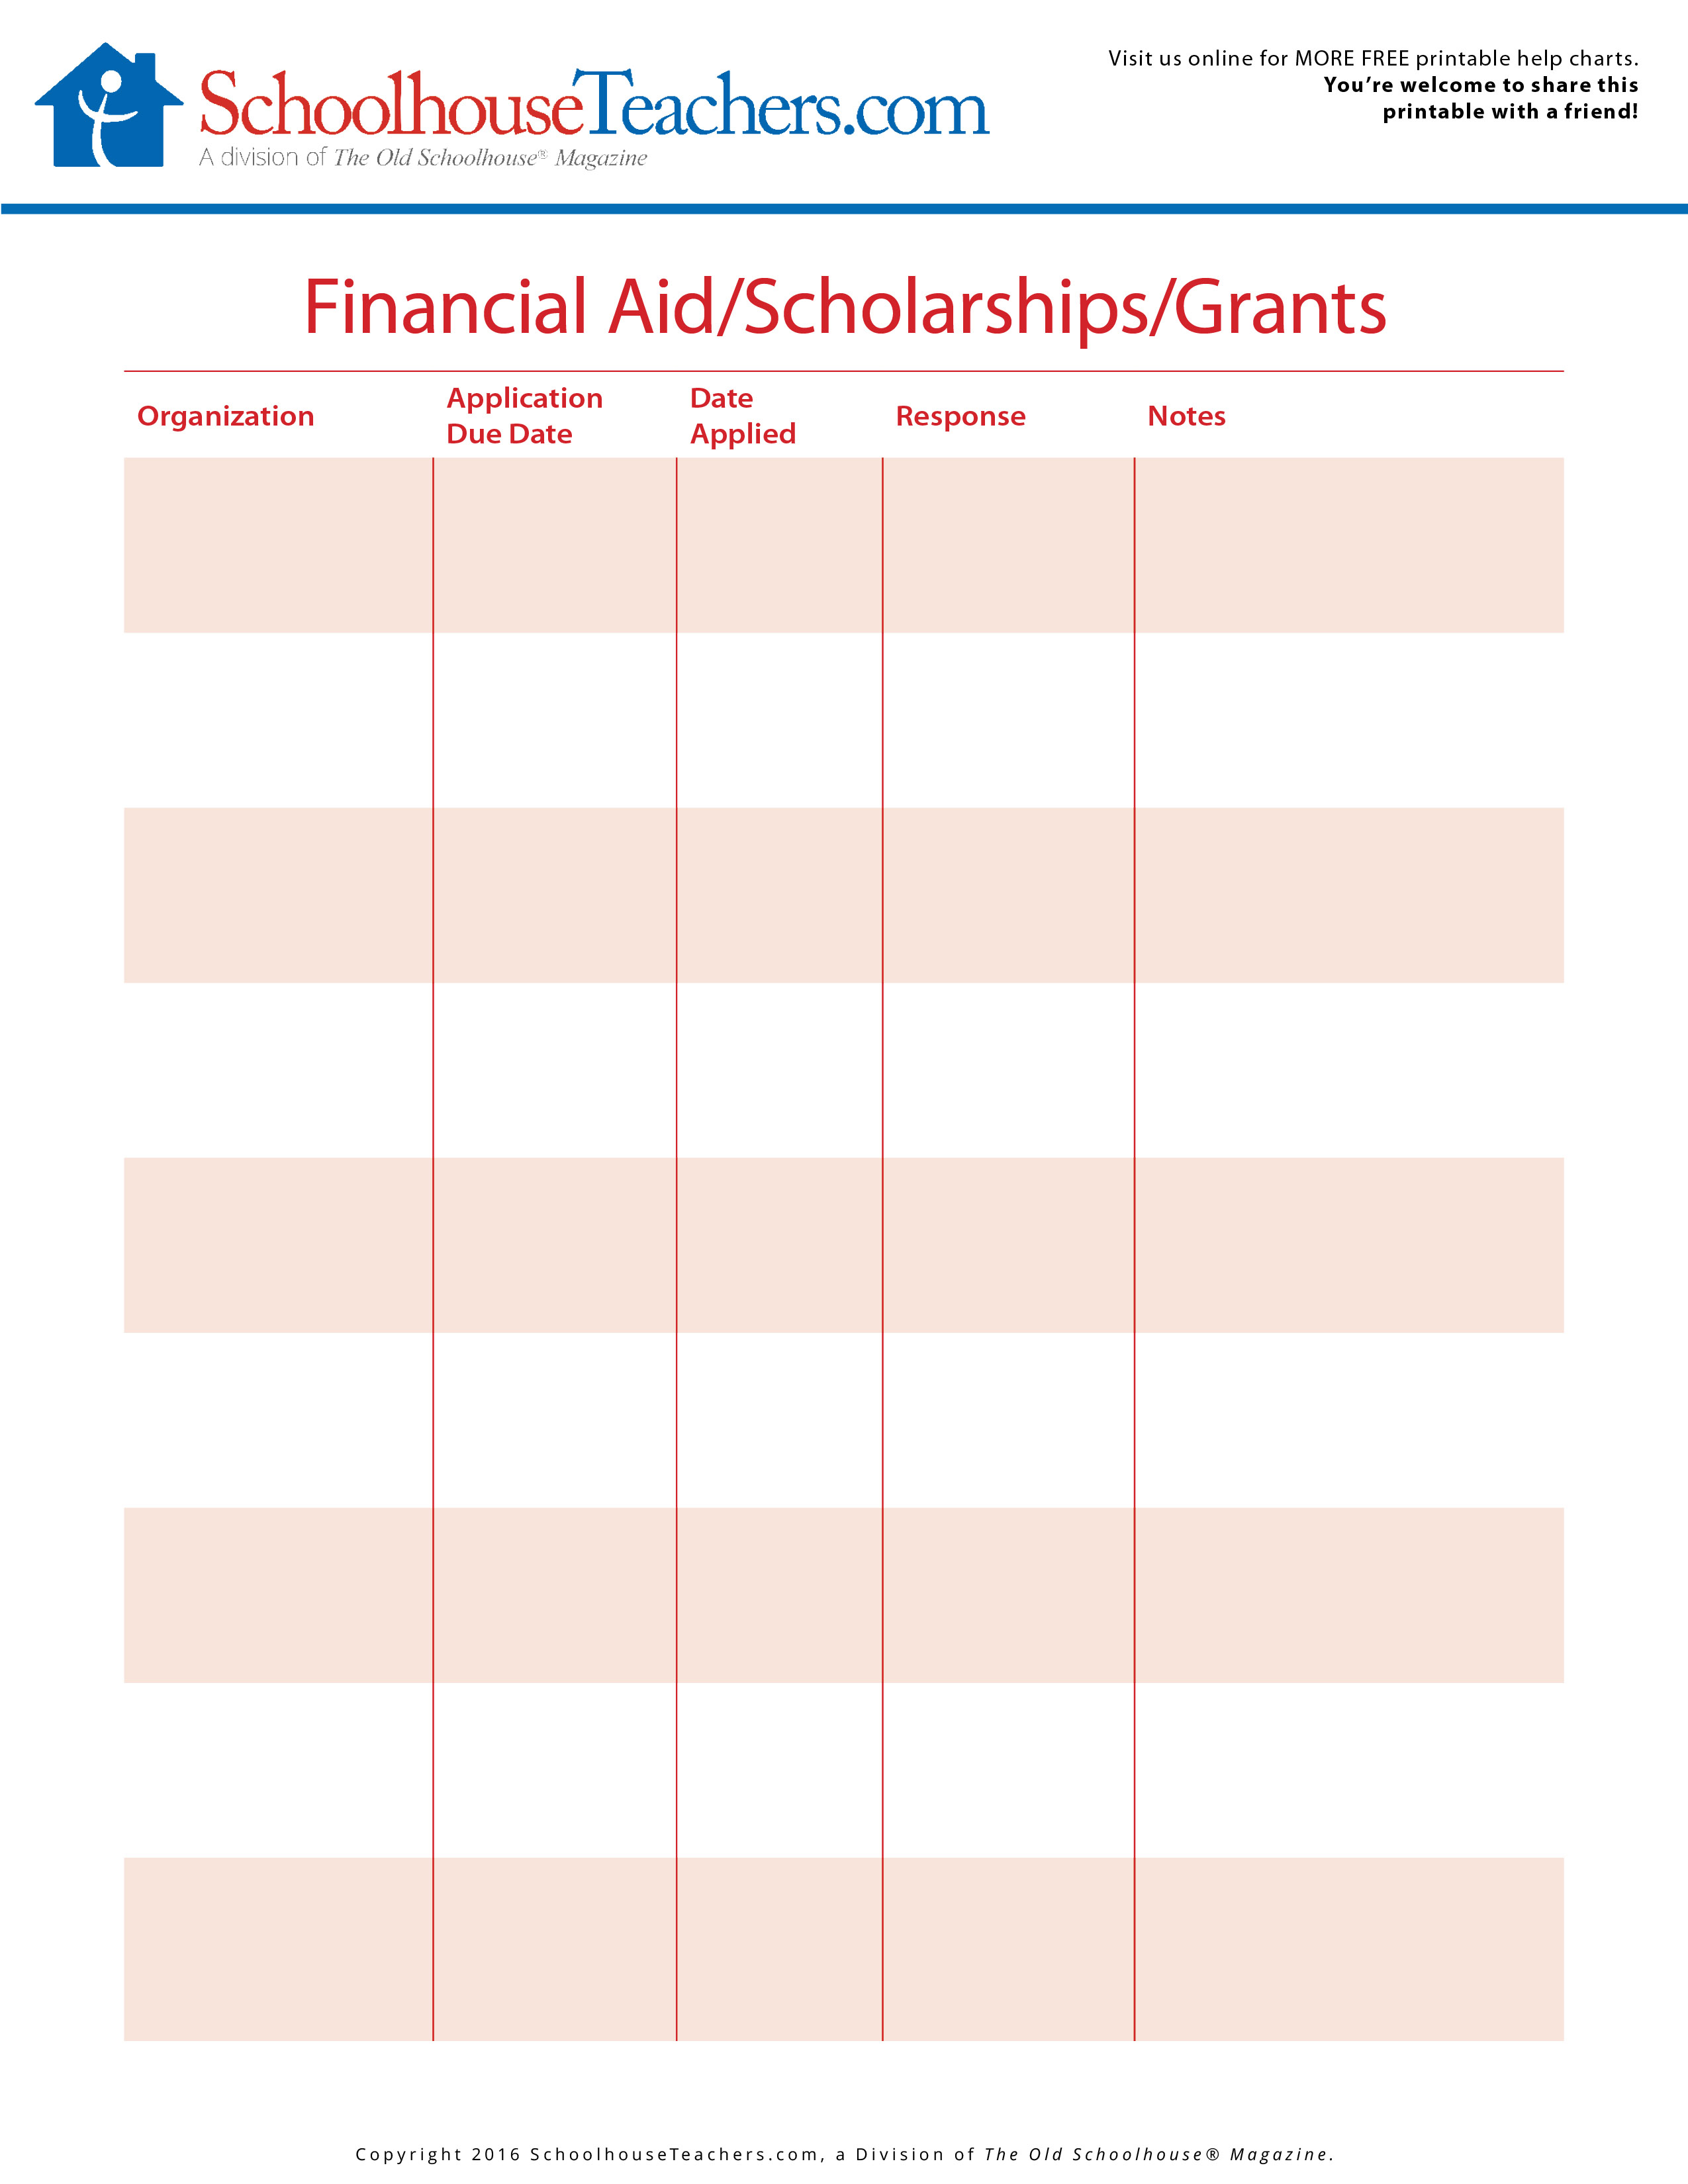 High School Transcript Print Out And Financial Aid Grant